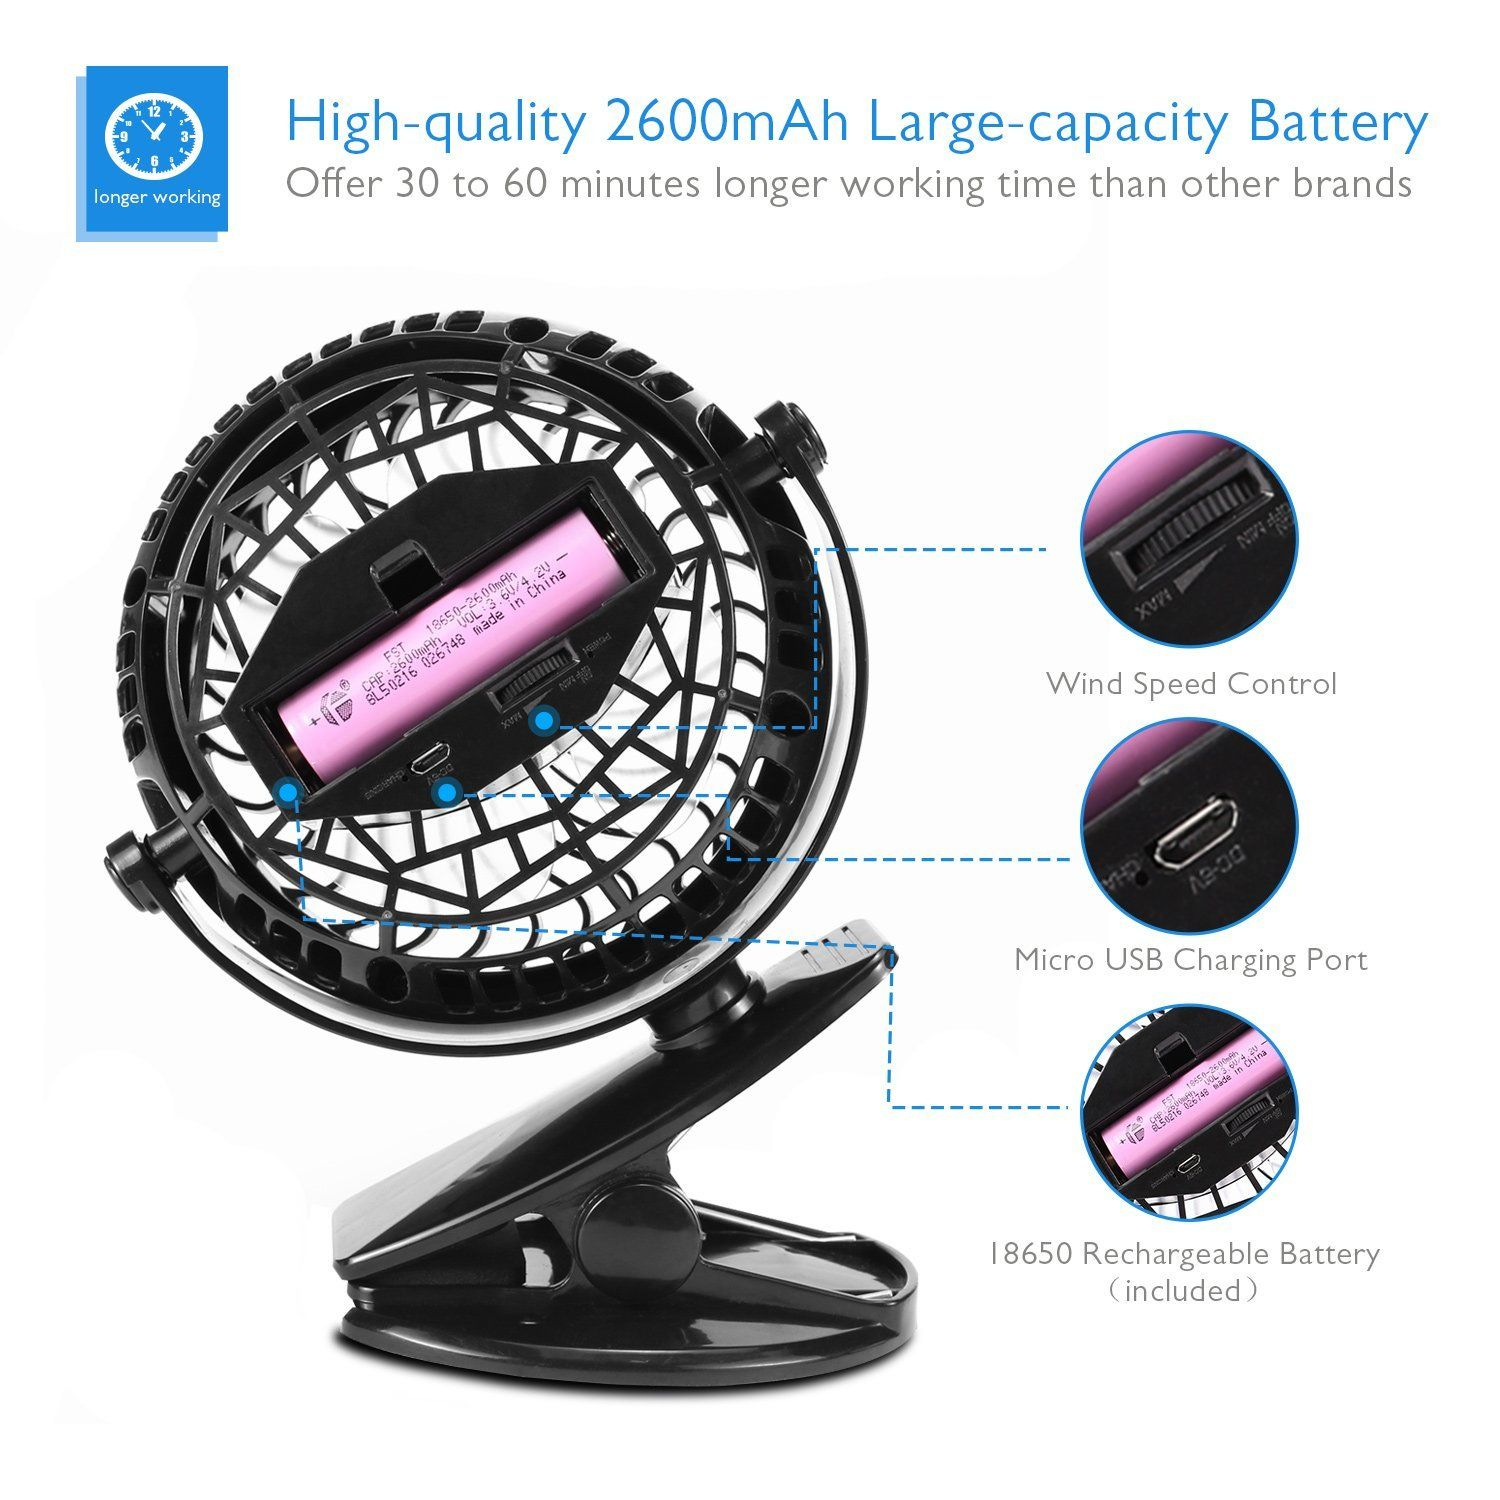 FLYING Mini USB Desk Rechargeable Fan with Upgraded 2600mAh - Enhanced Airflow,Lower Noise,Personal Cooling - Black